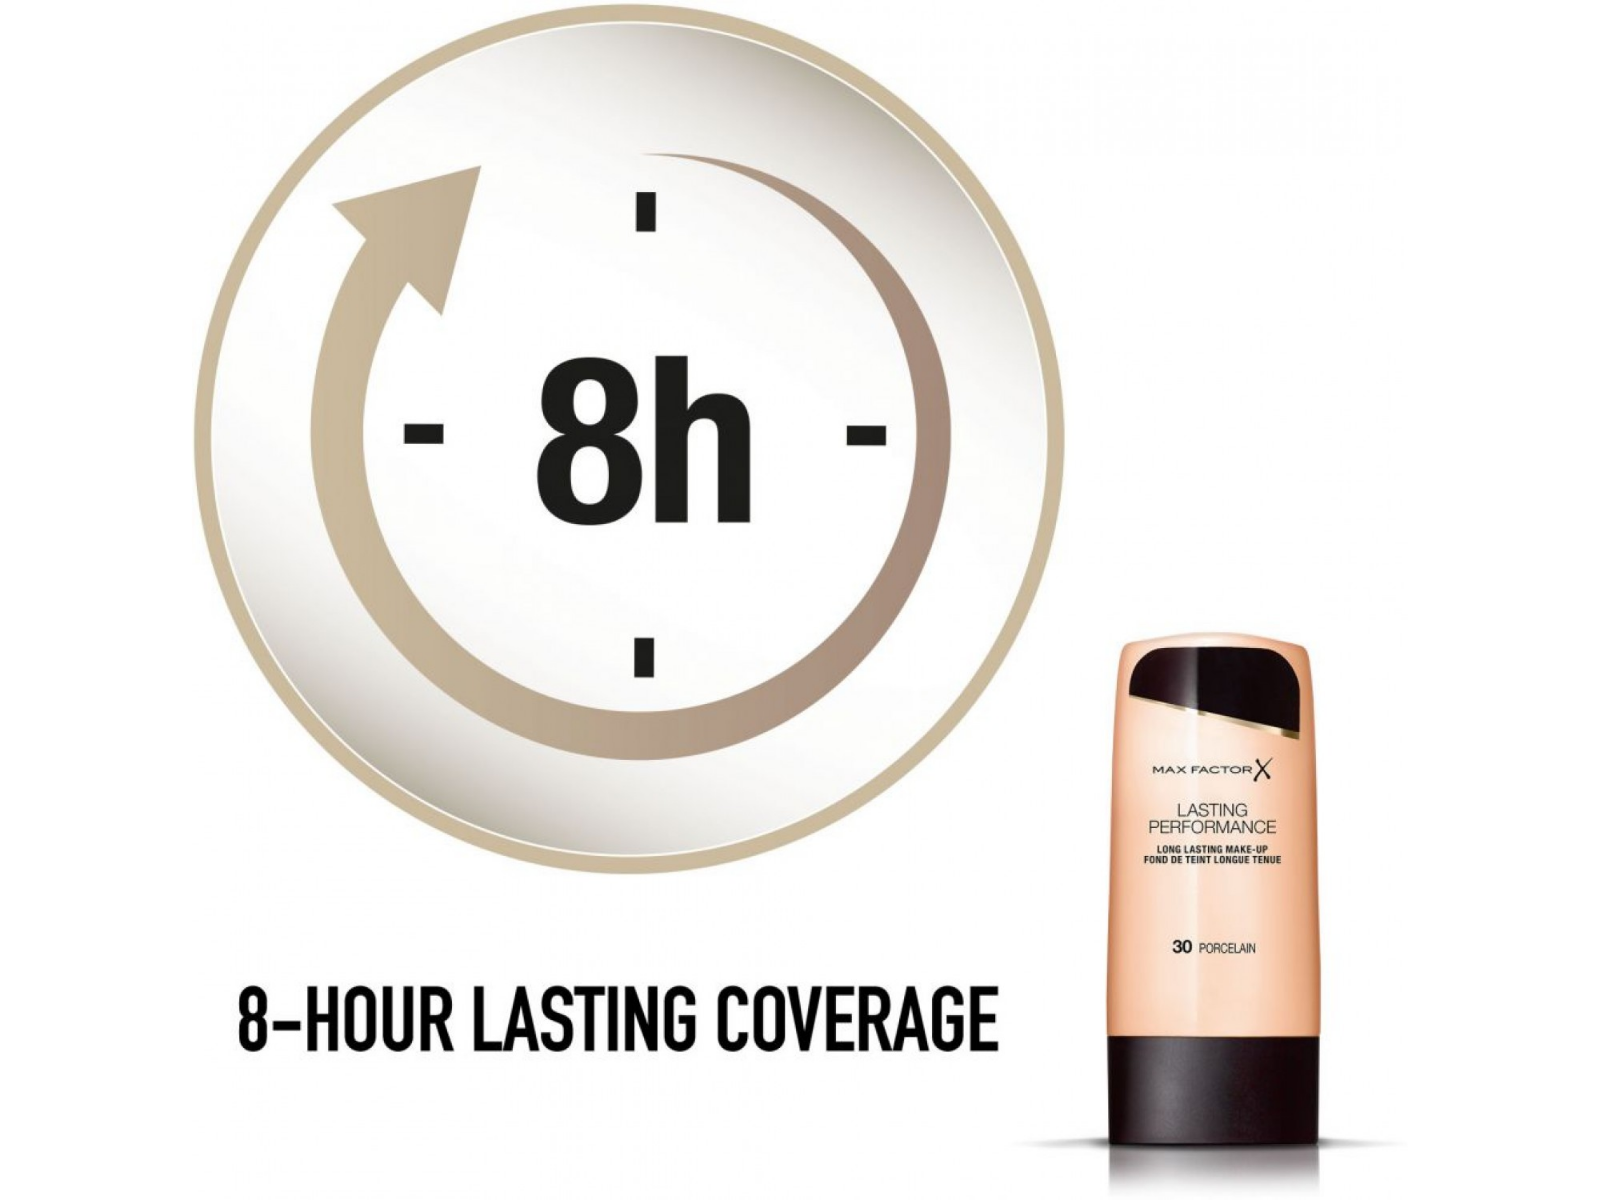 MAX FACTOR Lasting Performance Touch-Proof Liquid Foundation 35ml *CHOOSE SHADE* 2